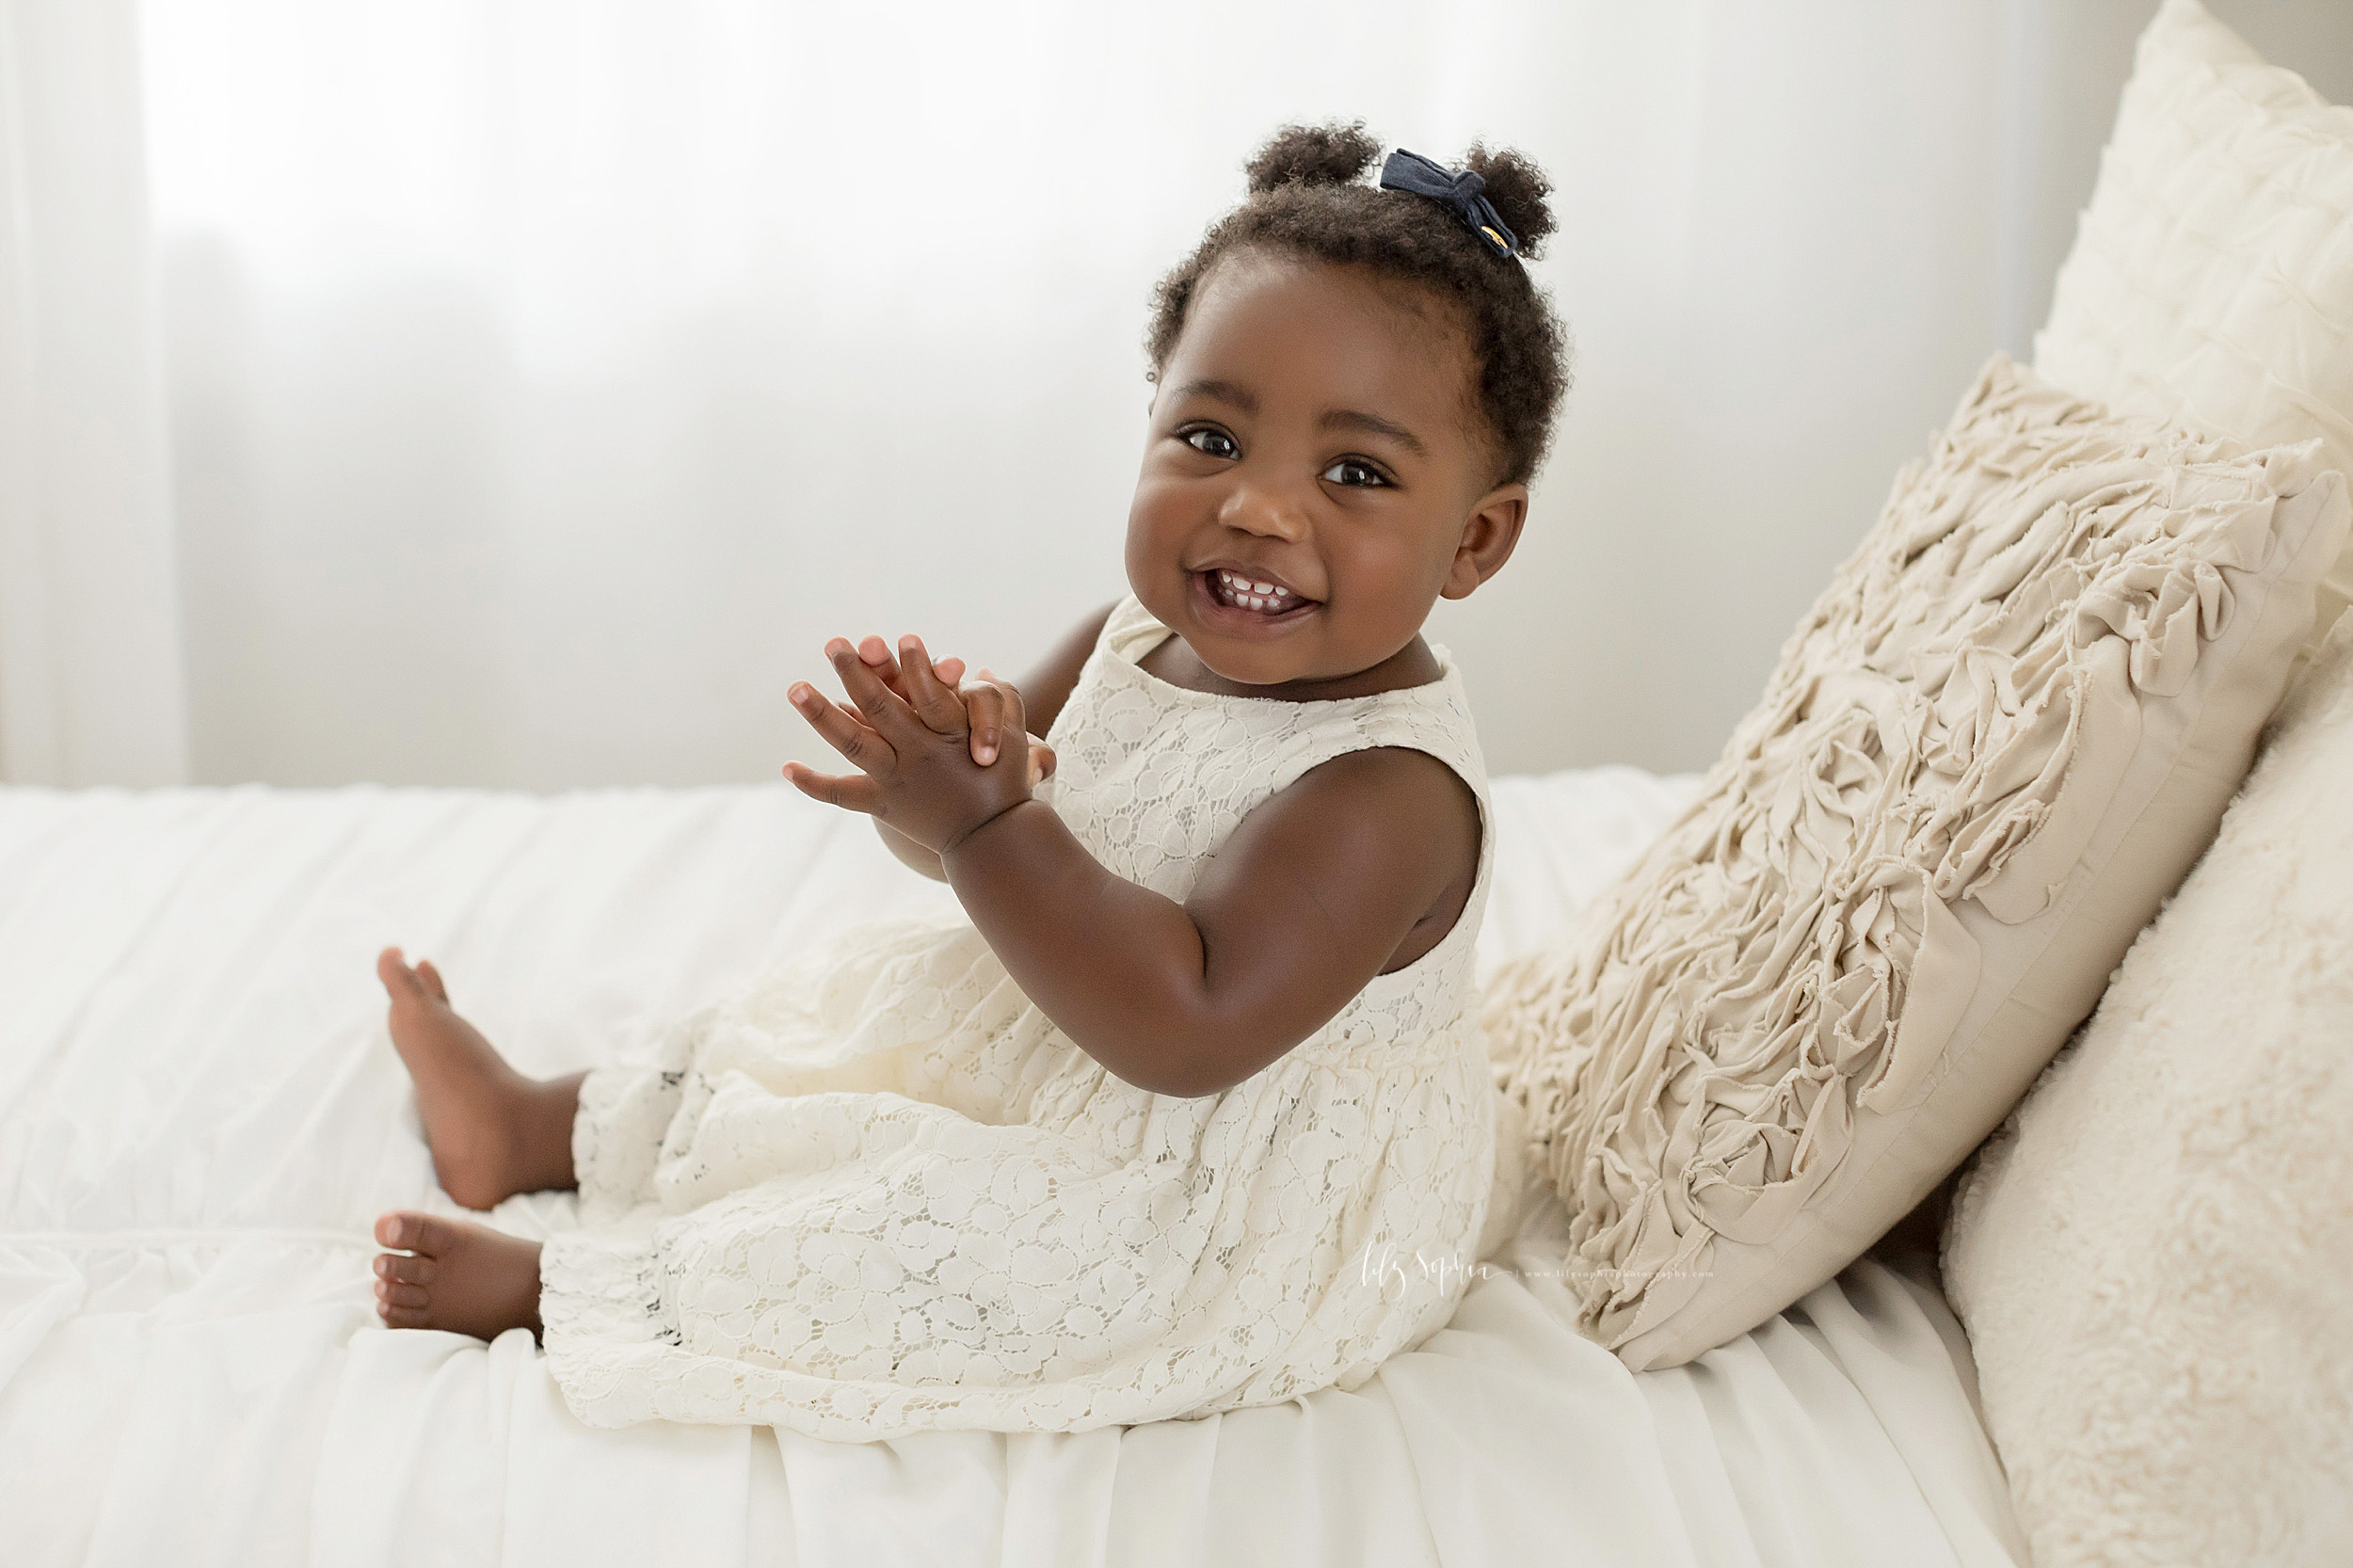 Photo of an African-American one-year old in a natural light Atlanta studio.  The little girl is sitting barefoot on a bed as she wears an off-white sleeveless lace dress.  She has two small ponytails on top of her head as she smiles and claps her hands.